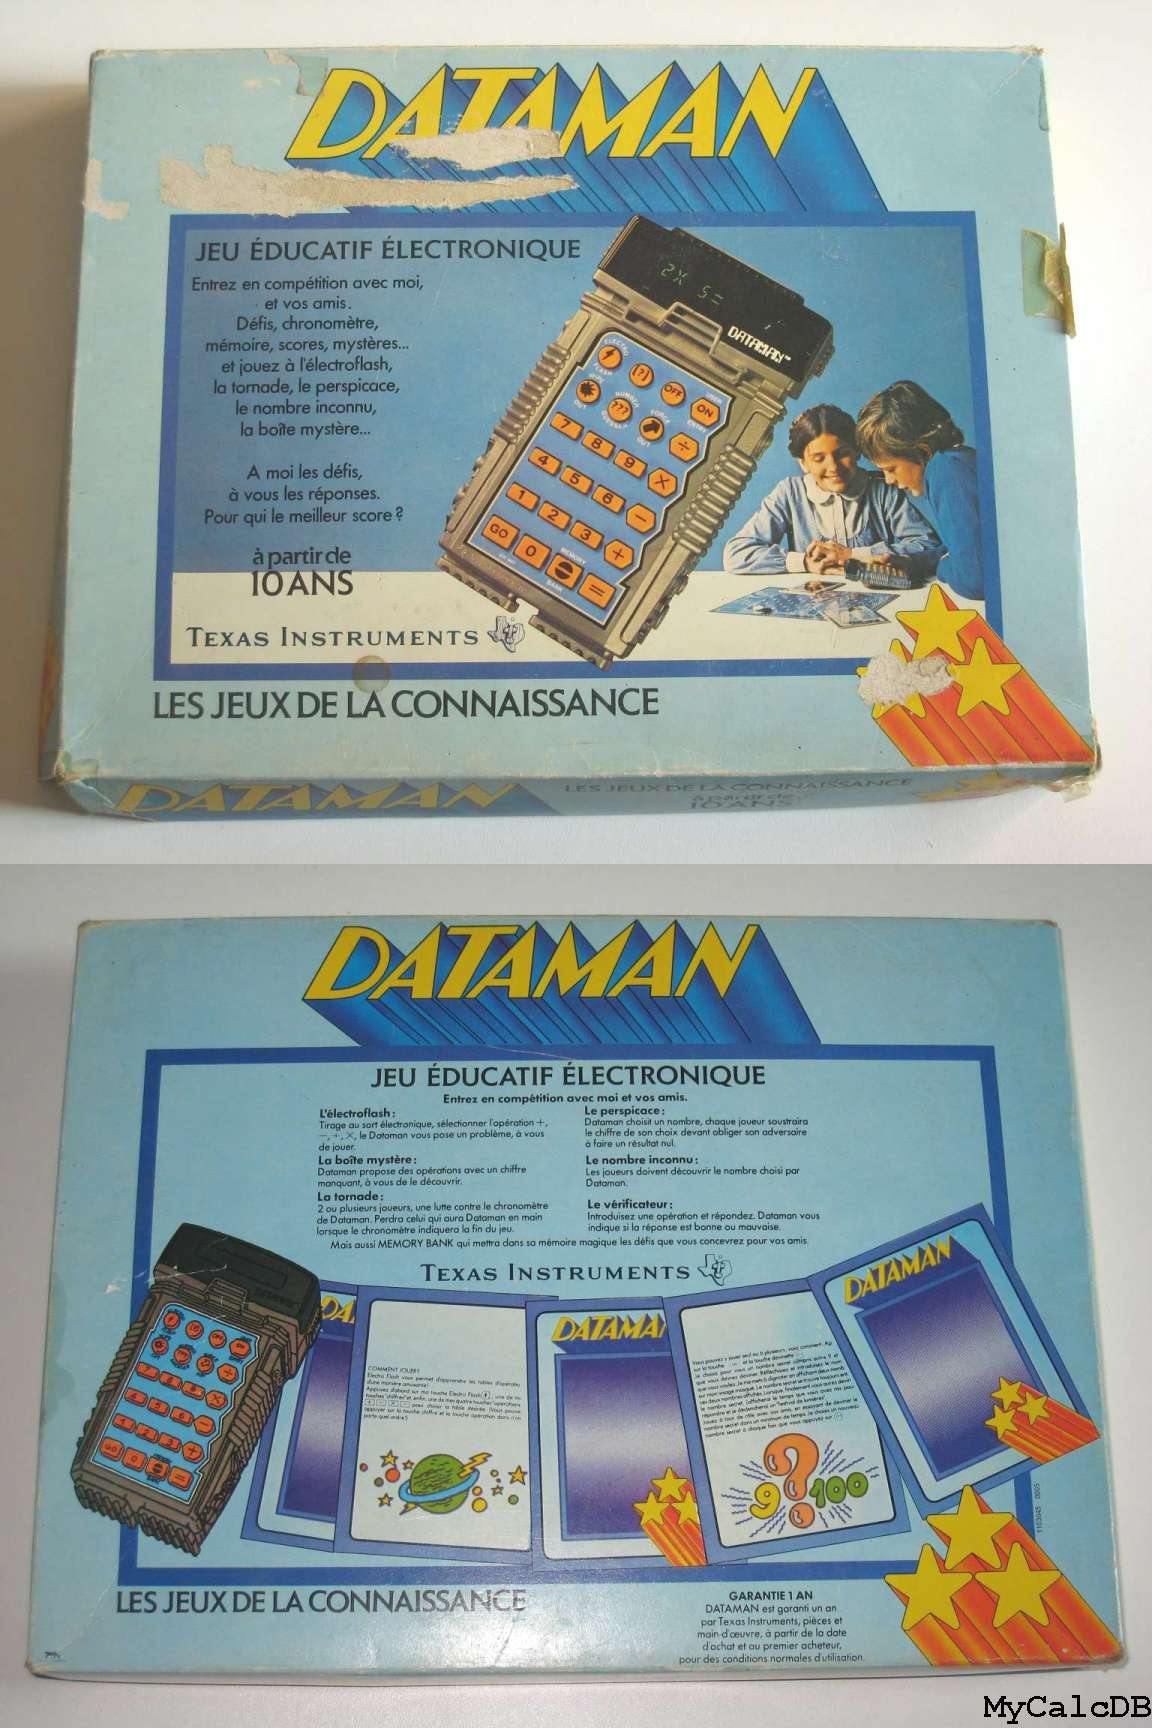 Texas Instruments DATAMAN